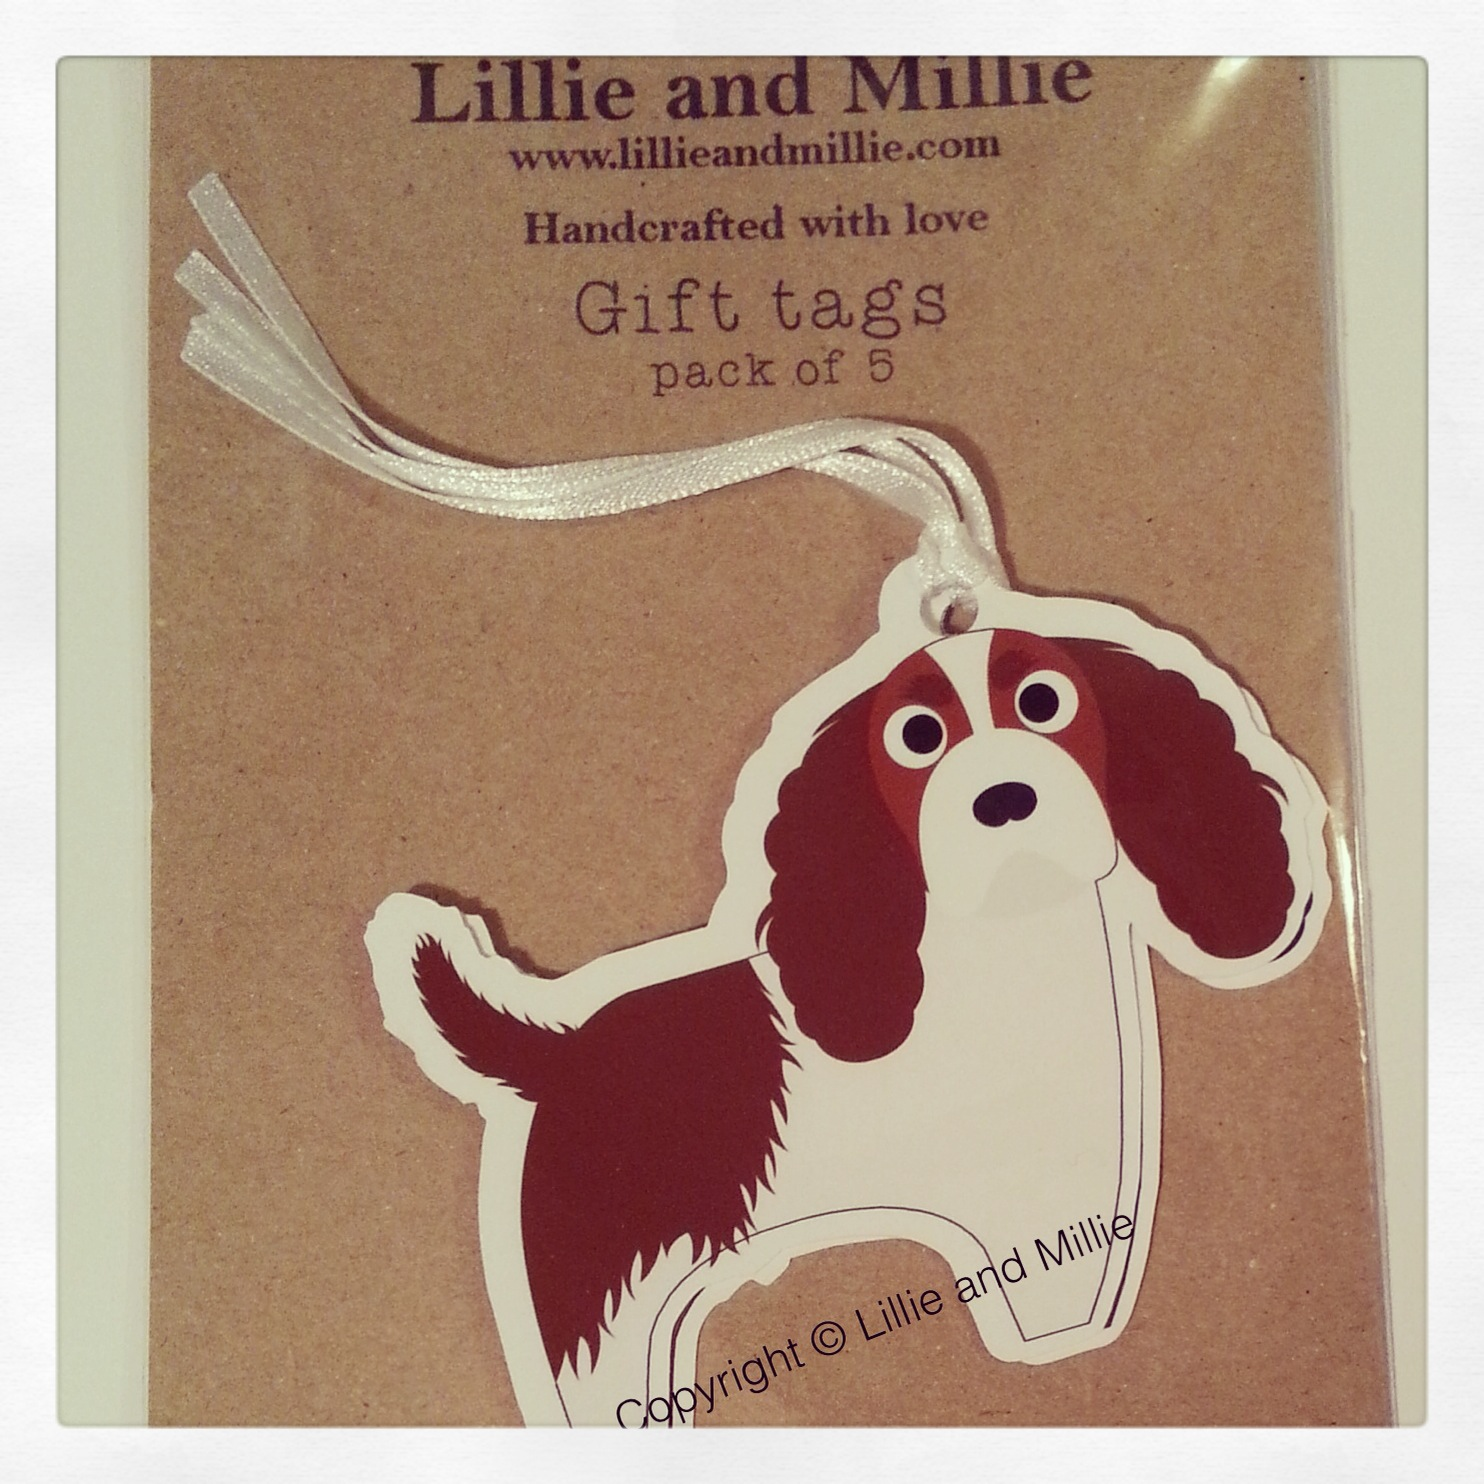 Cute and Cuddly King Charles Spaniel Gift Tags 5 Pack